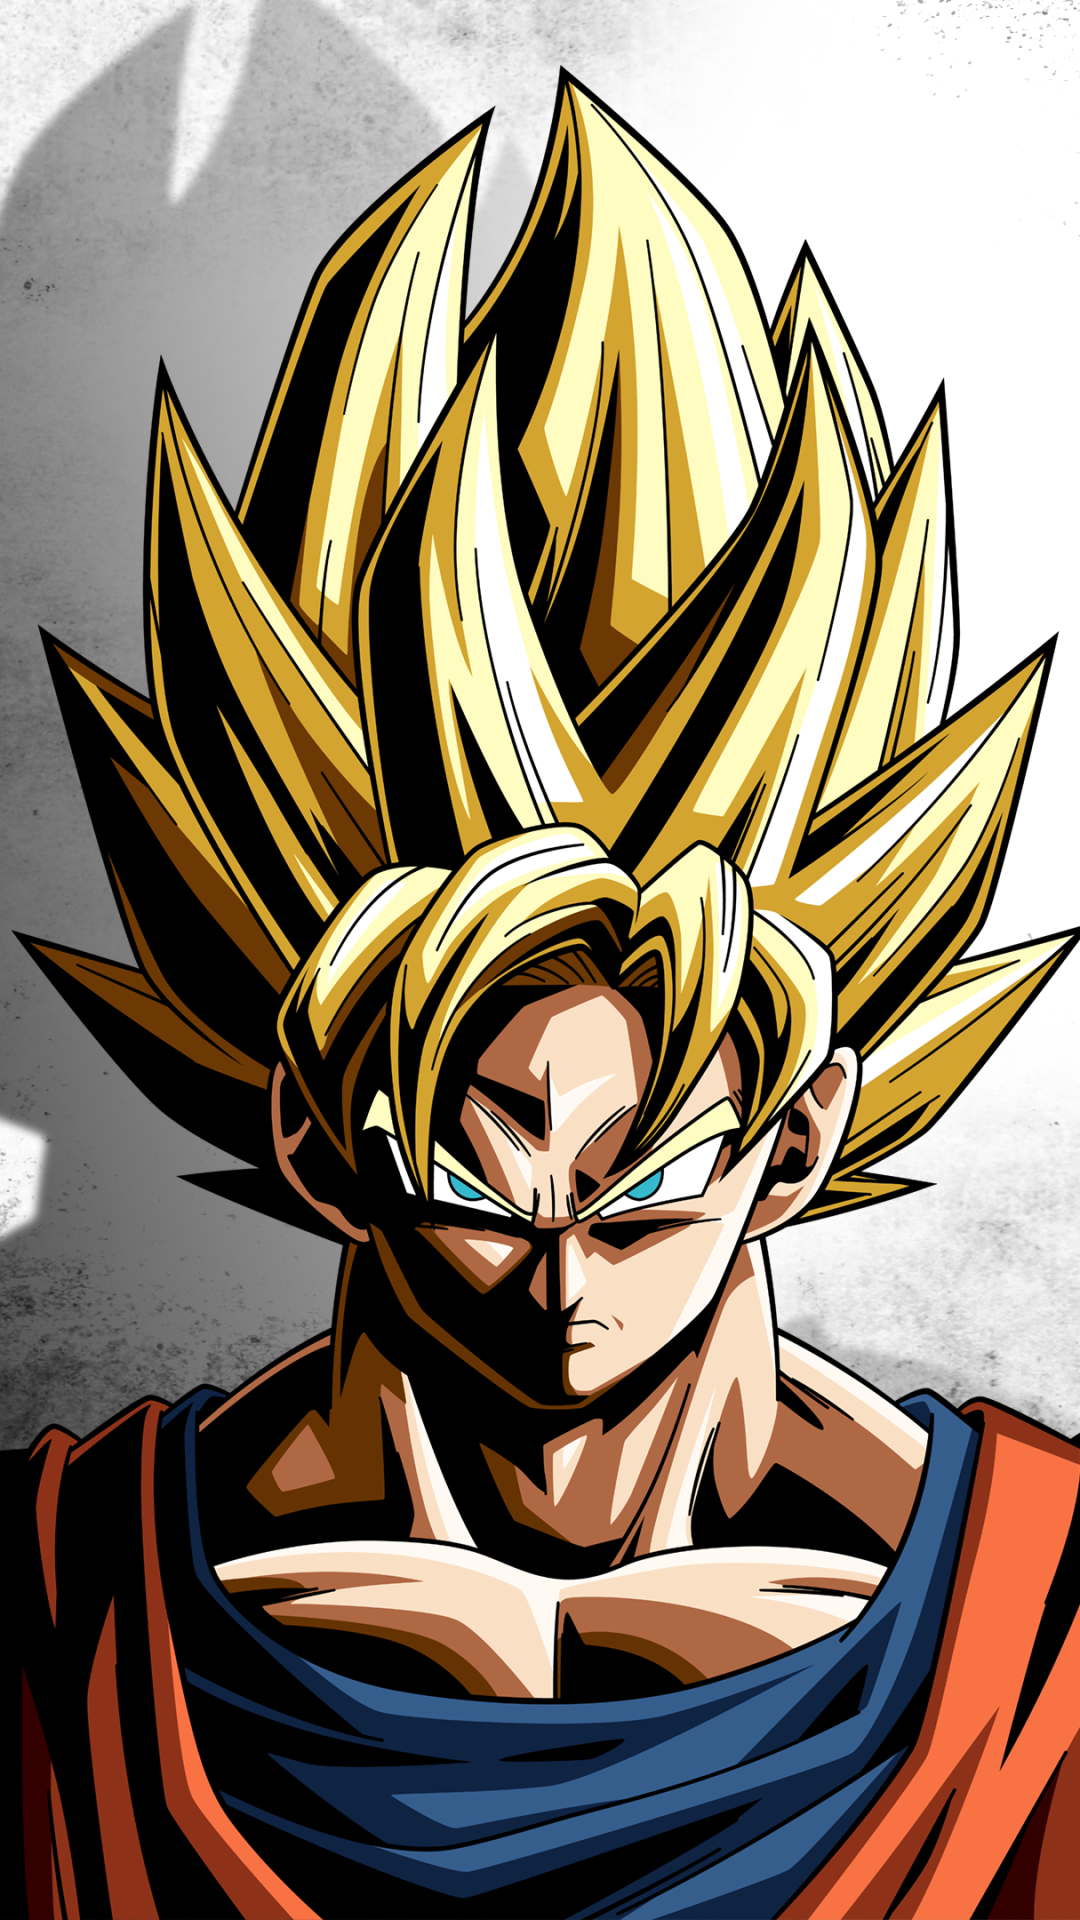 Download Dragon Ball Z Wallpapers For Mobile Gallery